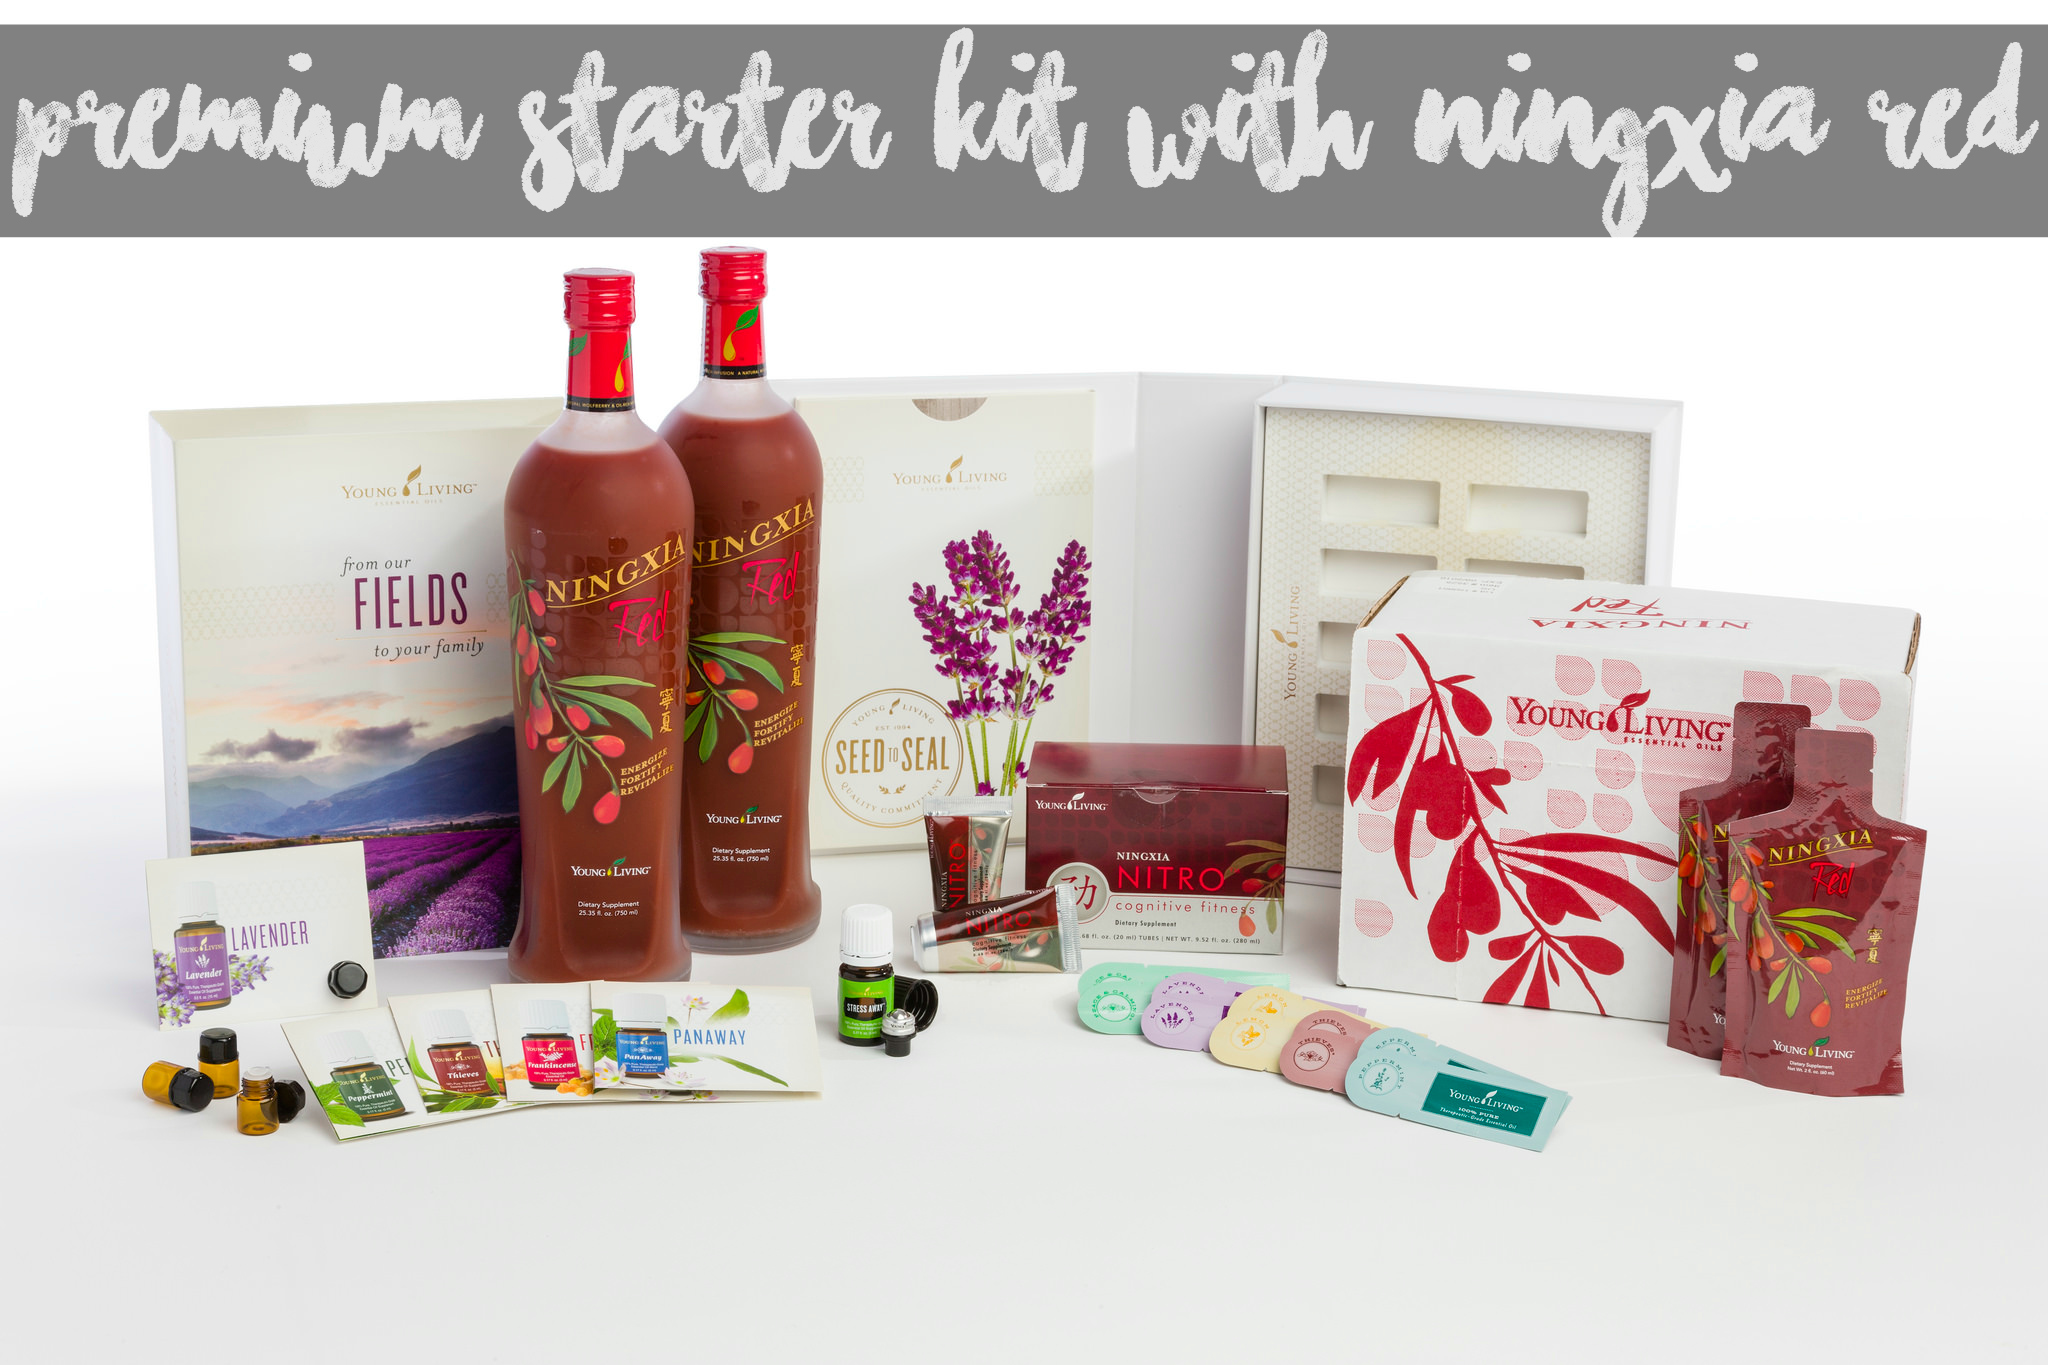 PSK with NingXia Red v1.1.jpg